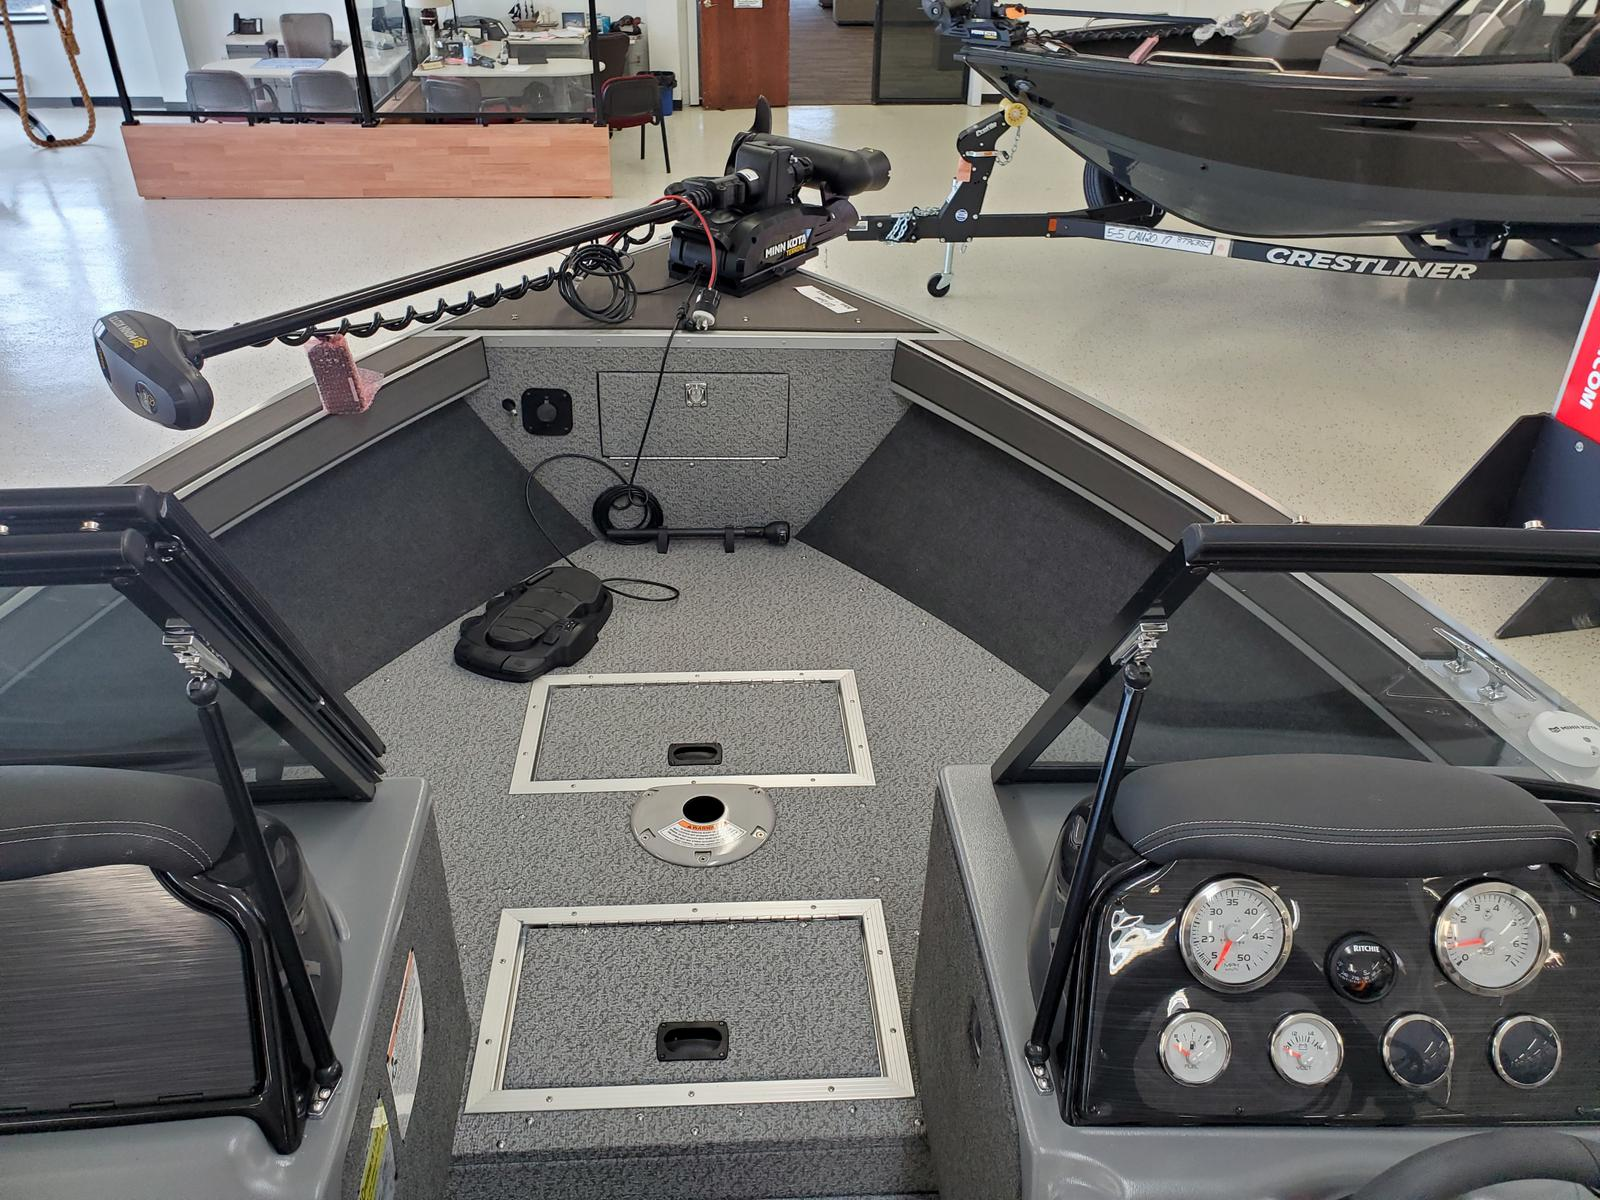 2021 Starcraft boat for sale, model of the boat is Fishmaster 210 & Image # 5 of 19